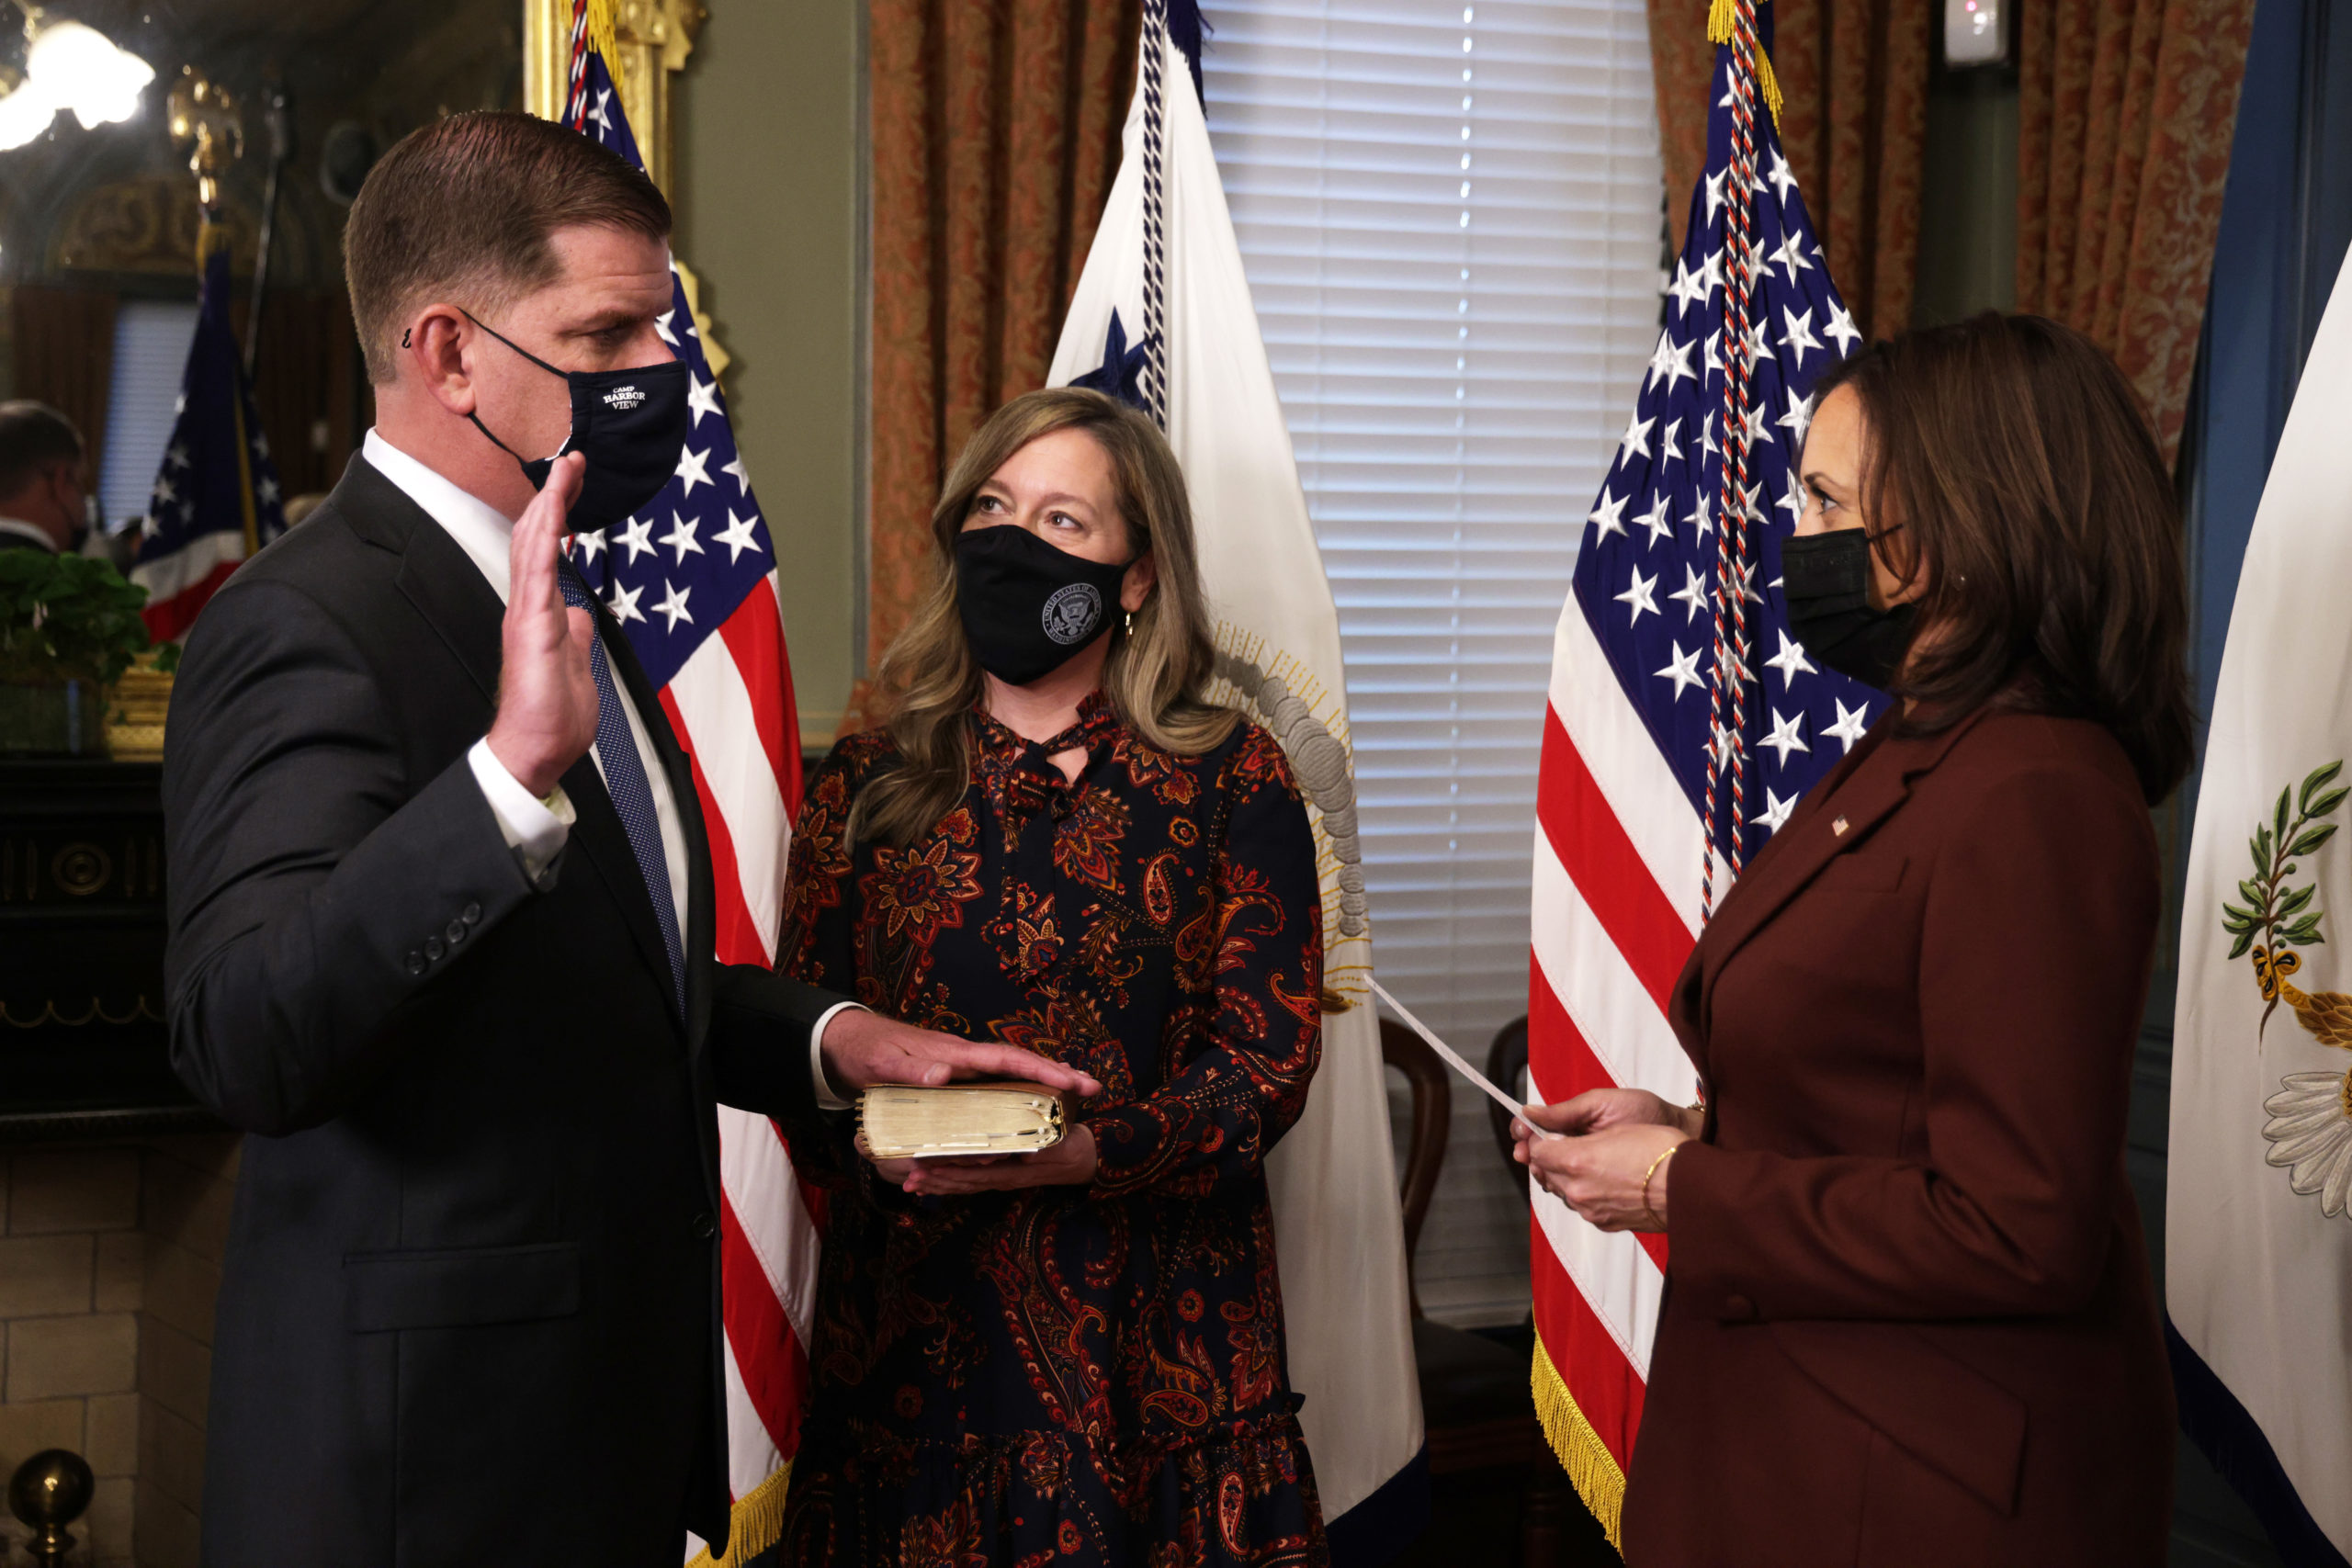 Marty Walsh is sworn in as secretary of labor by Vice President Kamala Harris on March 23. (Alex Wong/Getty Images)